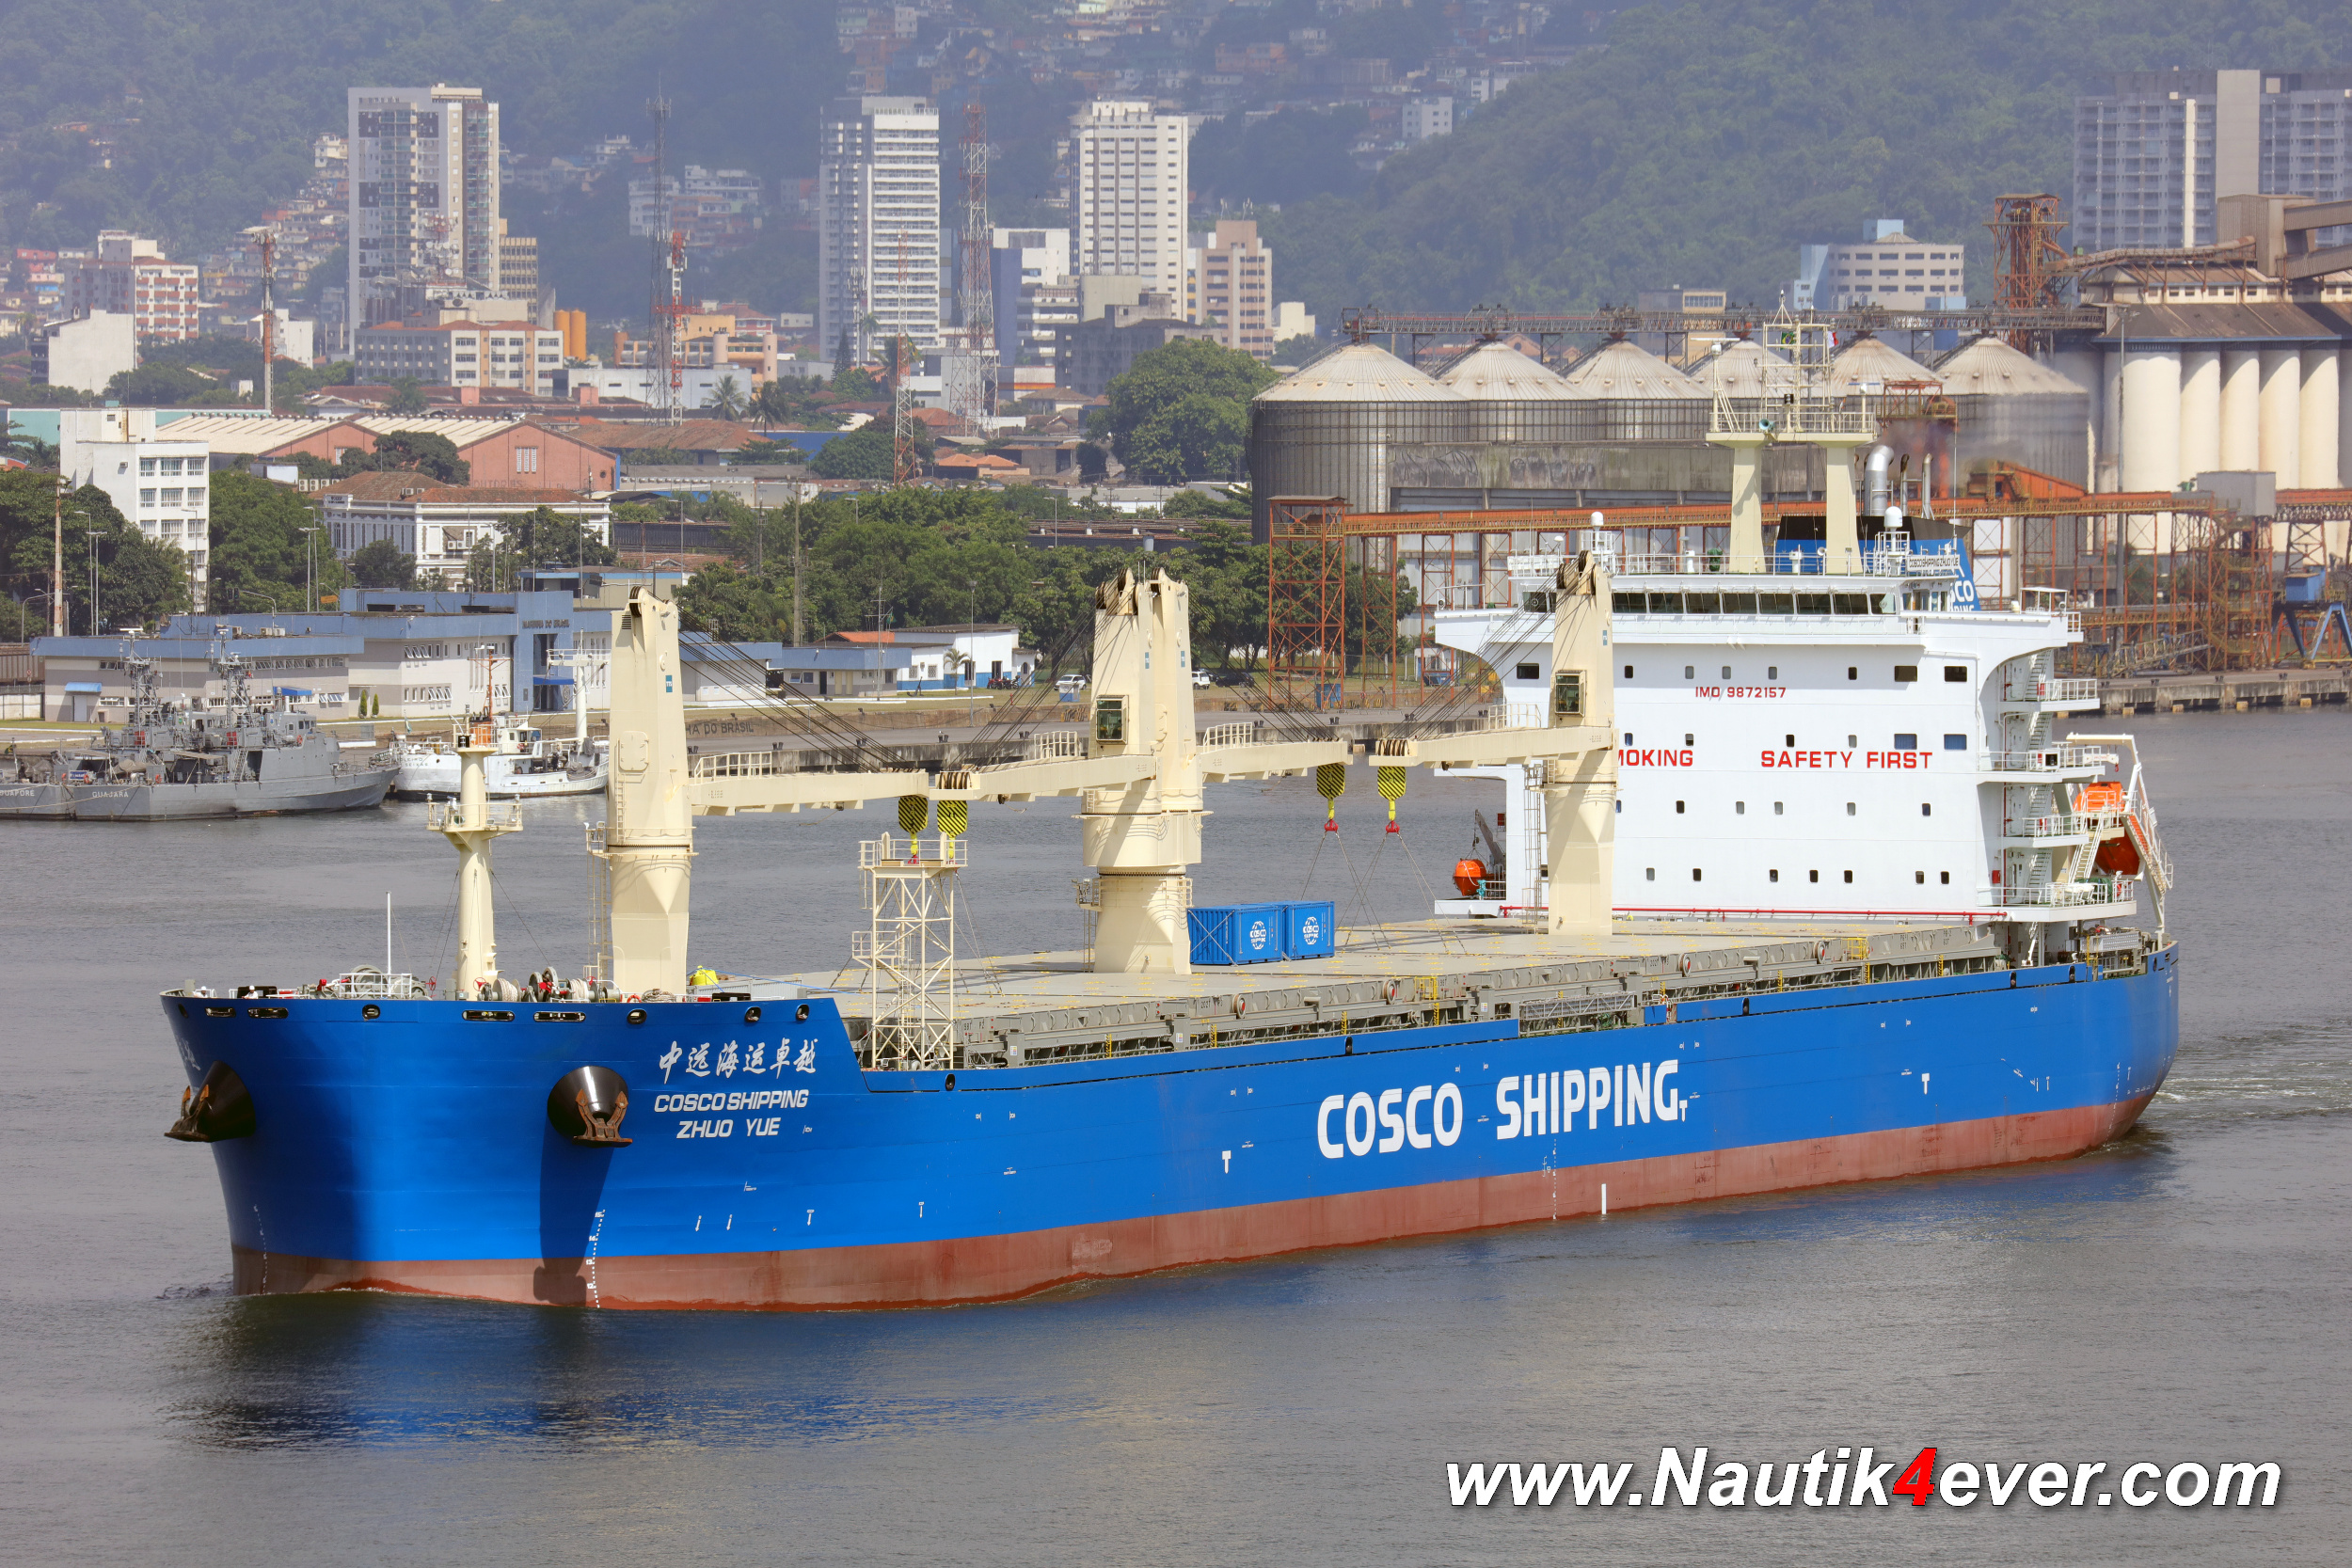 COSCO Shipping Zhuo Yue